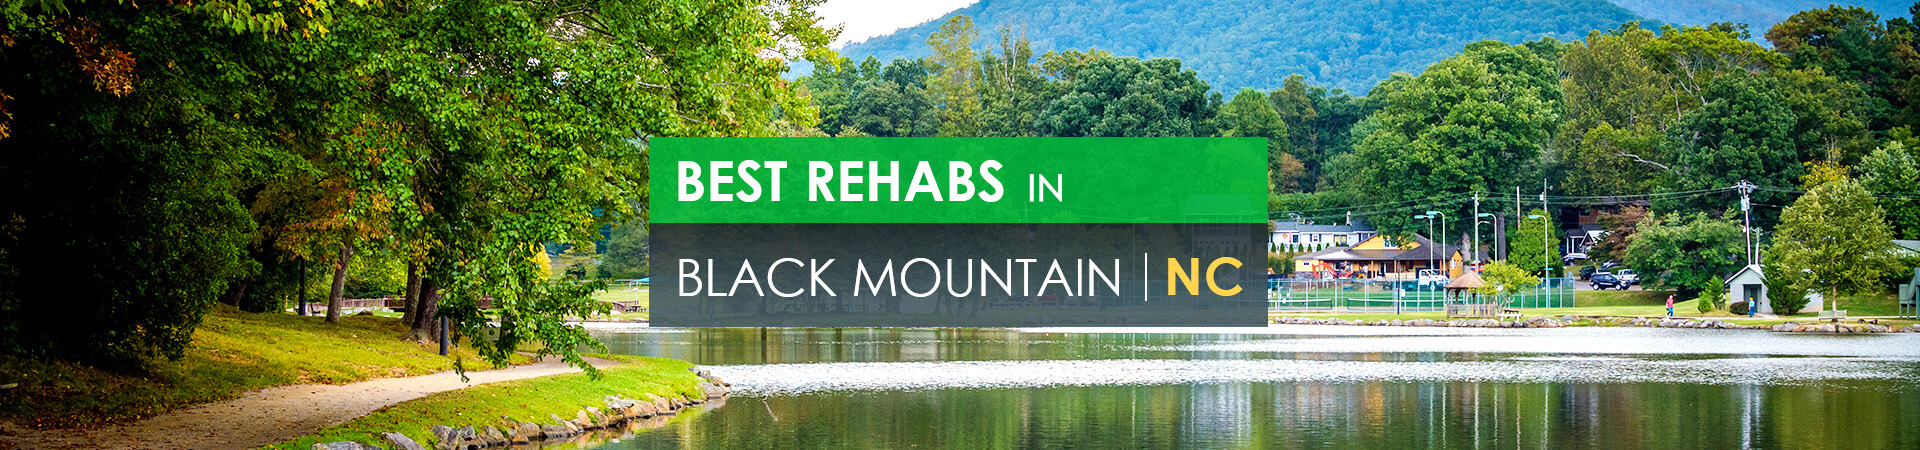 Best rehabs in Black Mountain, NC